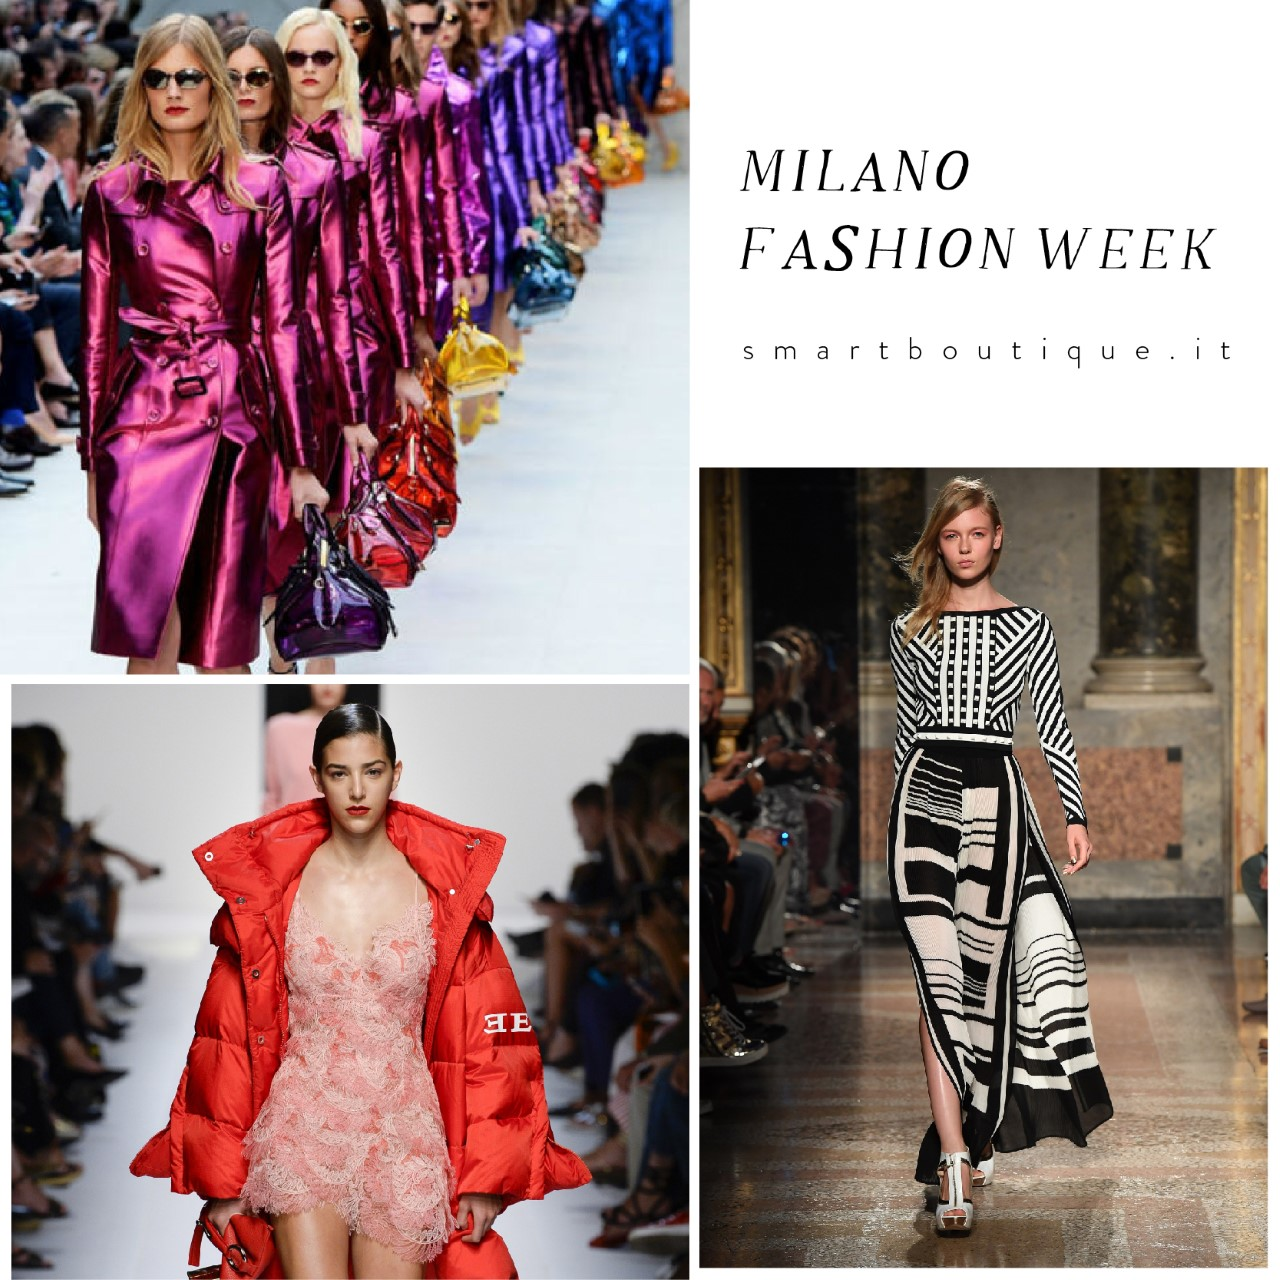 Smart Boutique alla Milano Fashion Week